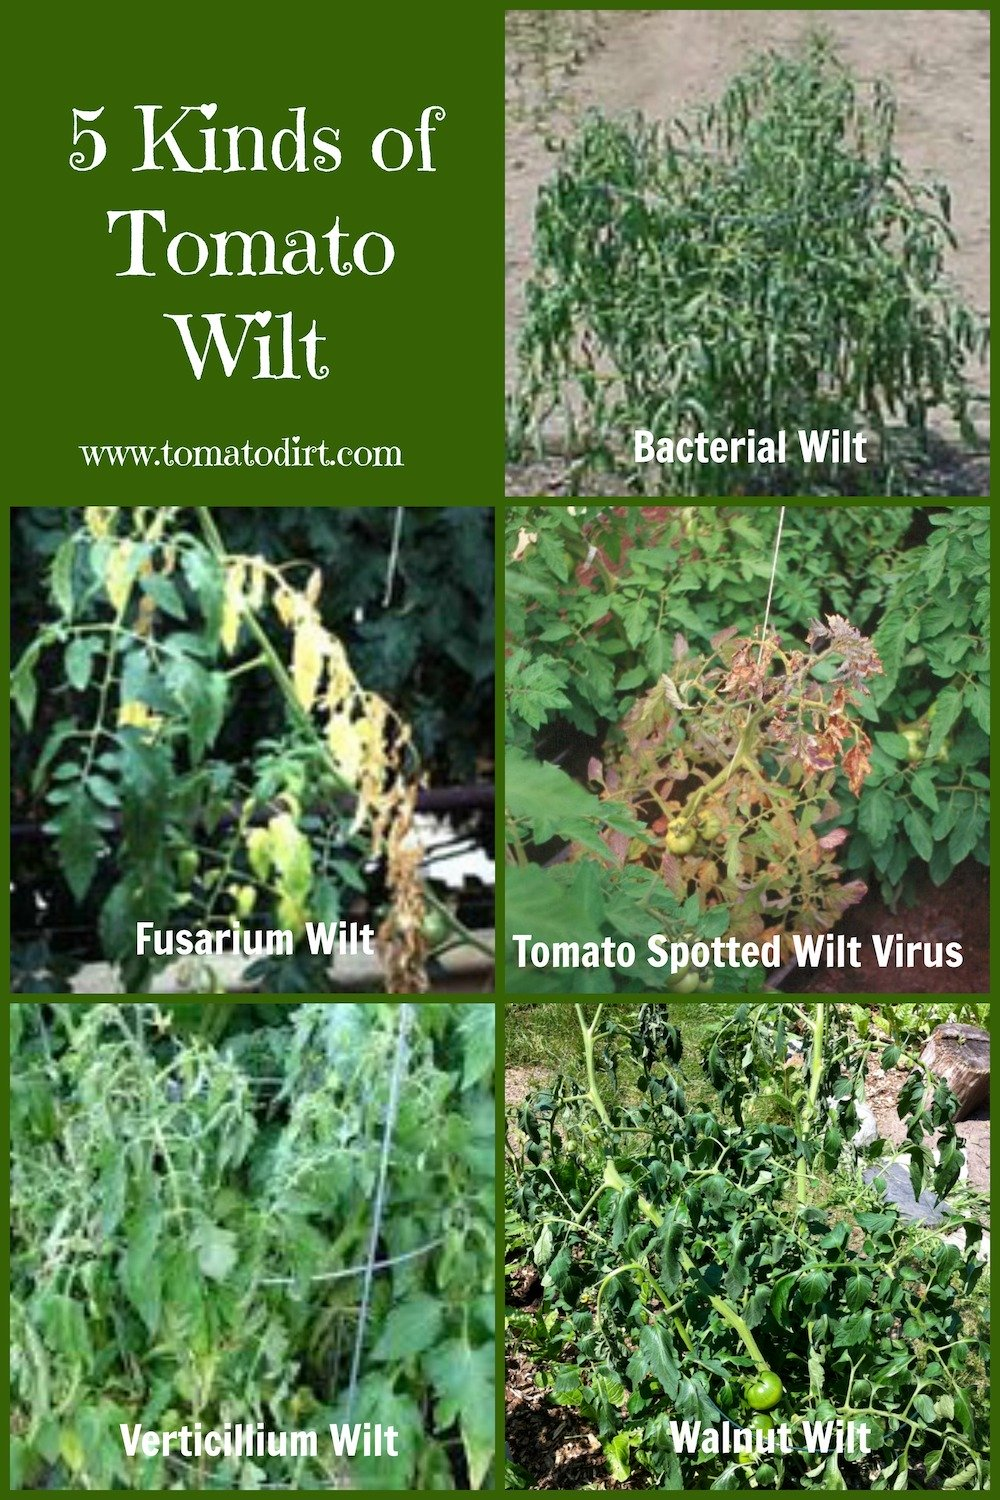 Compare 5 kinds of tomato wilt as you're identifying tomato diseases with Tomato Dirt